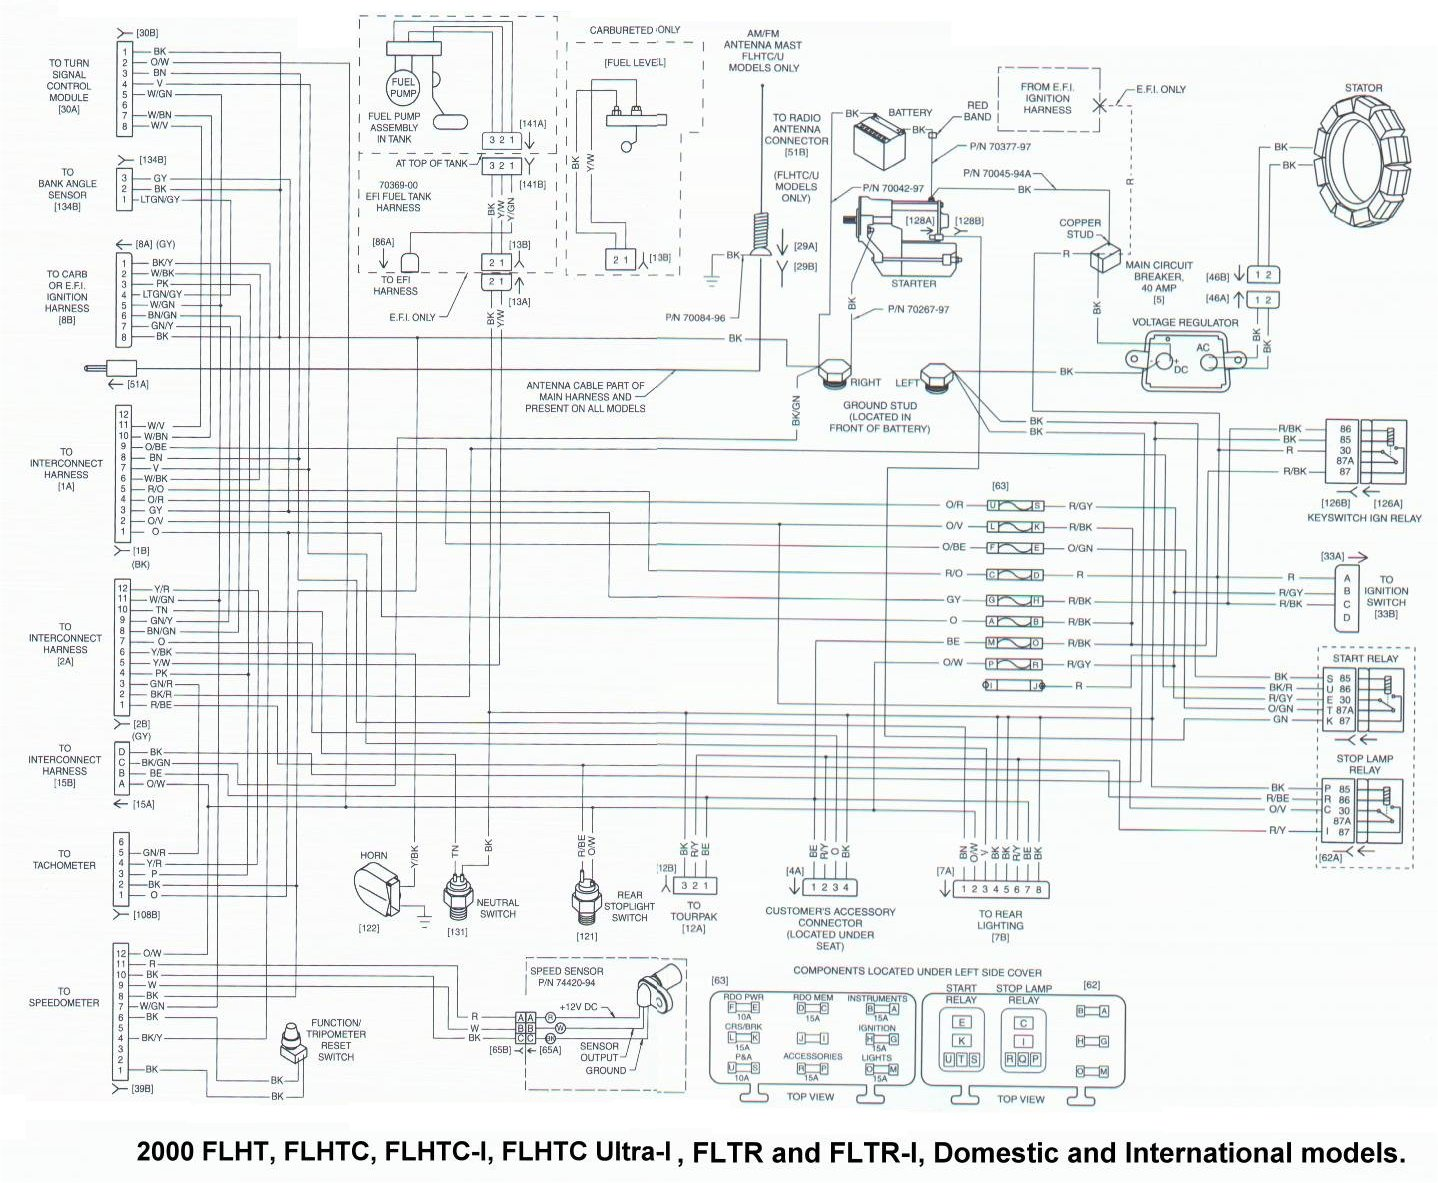 flstf wiring diagram general wiring diagram information u2022 rh velvetfive co uk